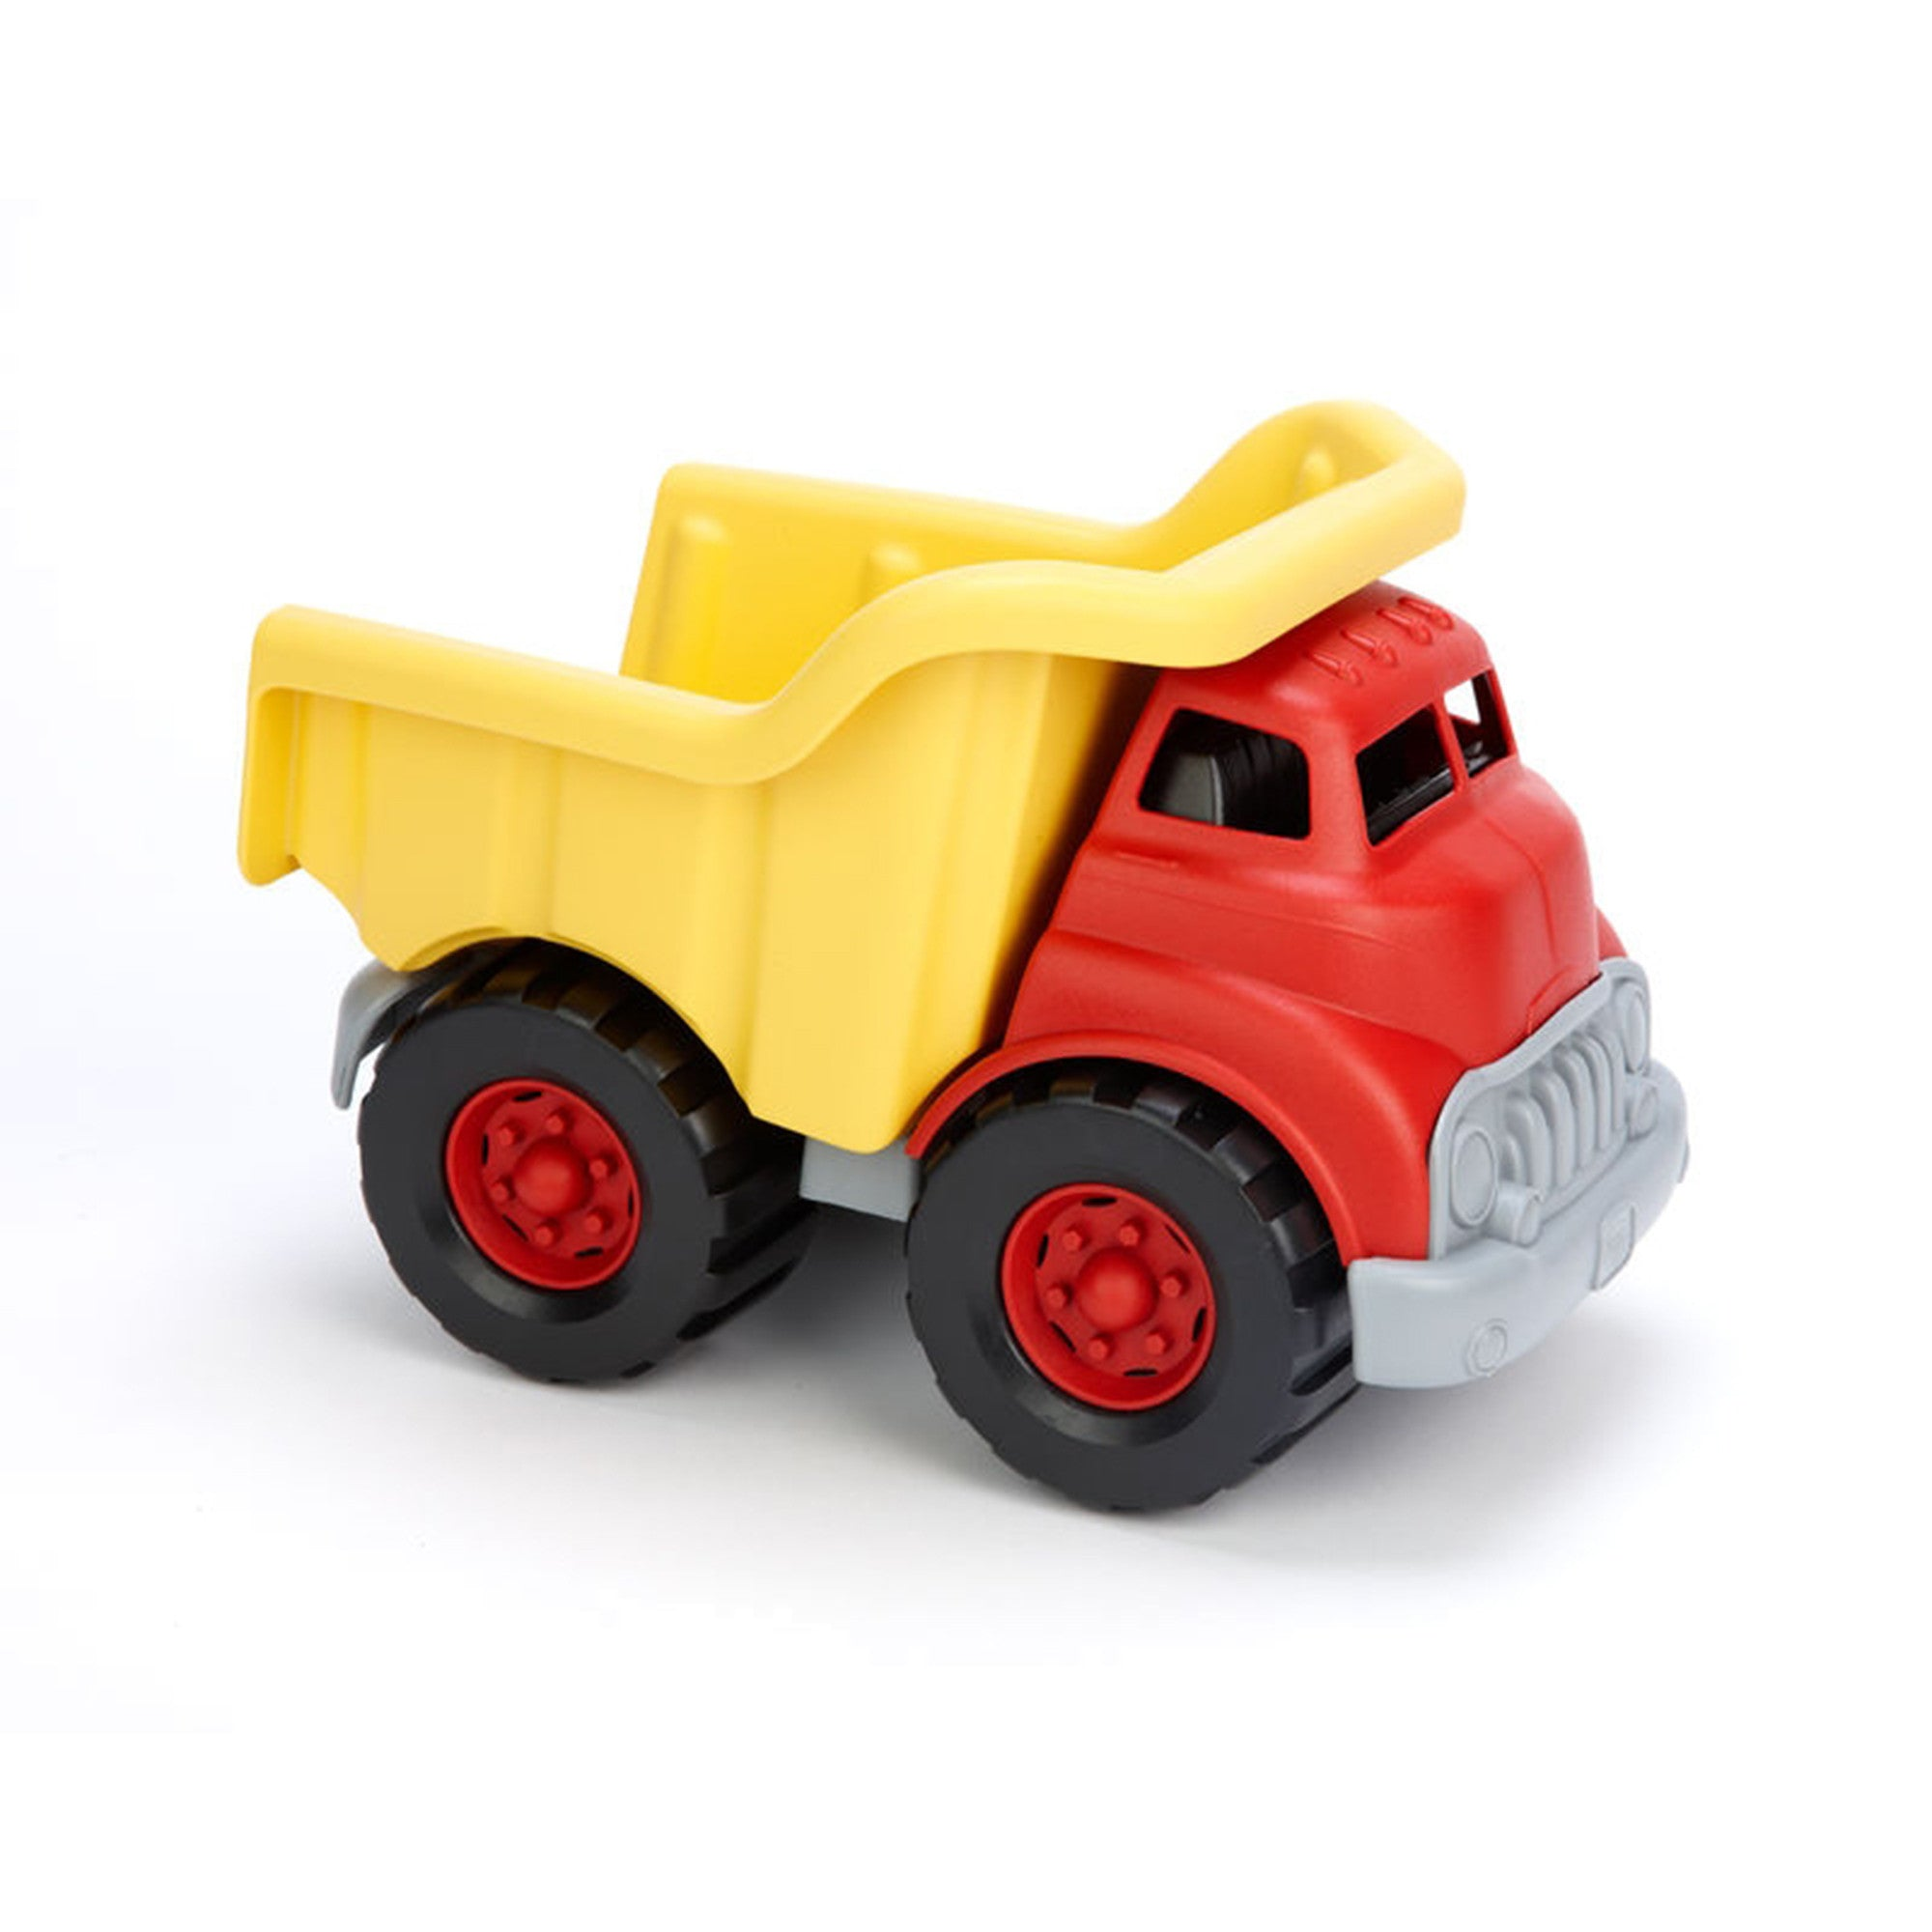 Green Toys Dump Truck Green Toys Play Vehicles Red/Yellow at Little Earth Nest Eco Shop